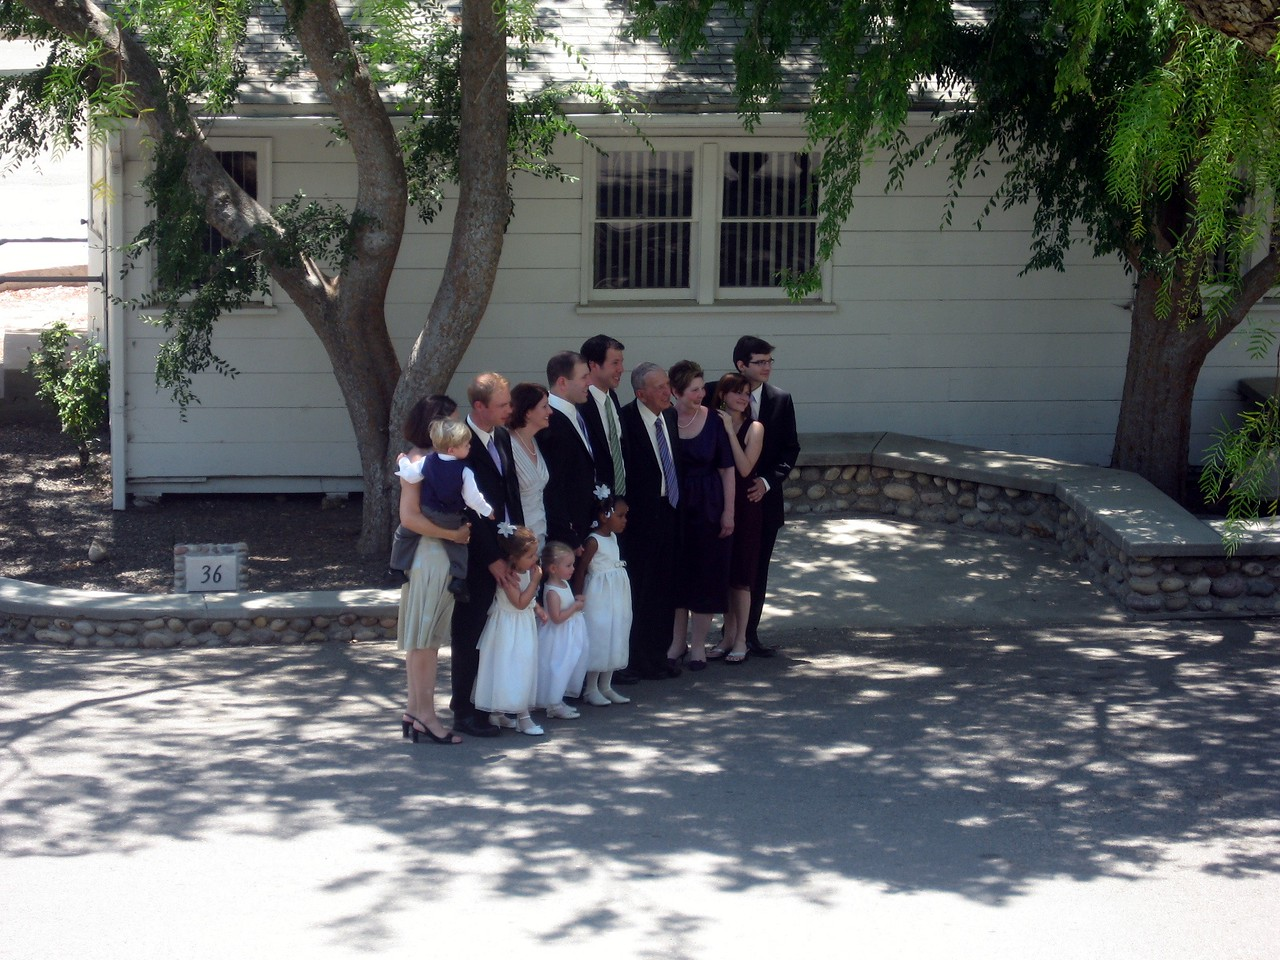 The groom's family poses for photos